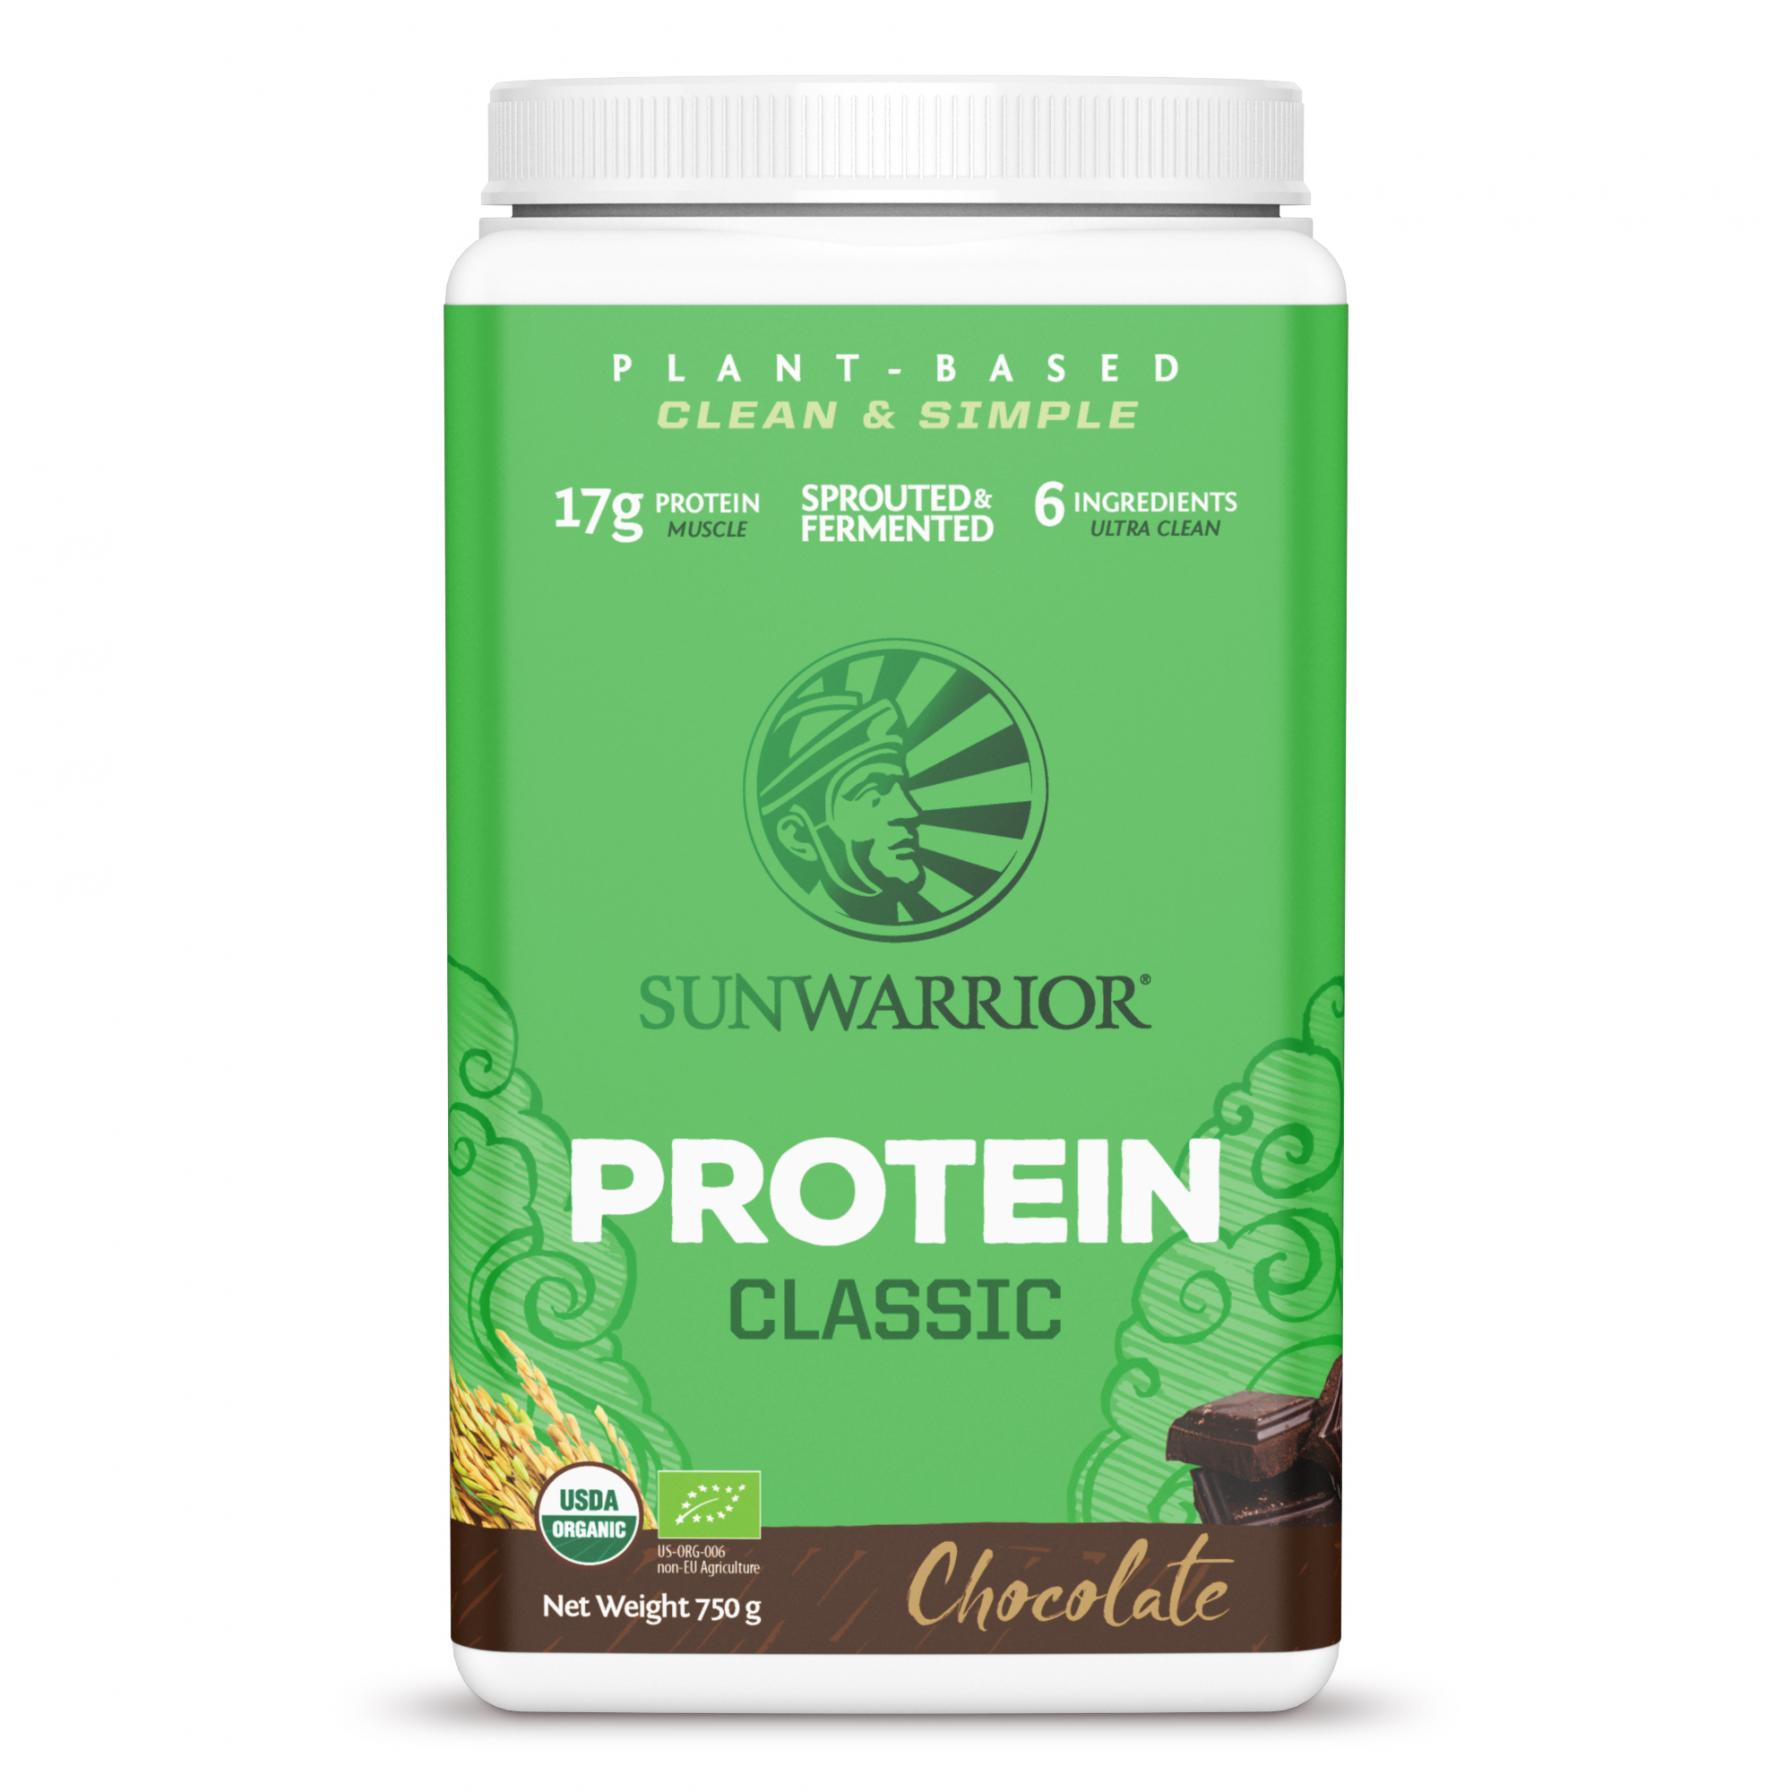 Protein Classic Chocolate 750g (Green Tub) (Currently Unavailable)